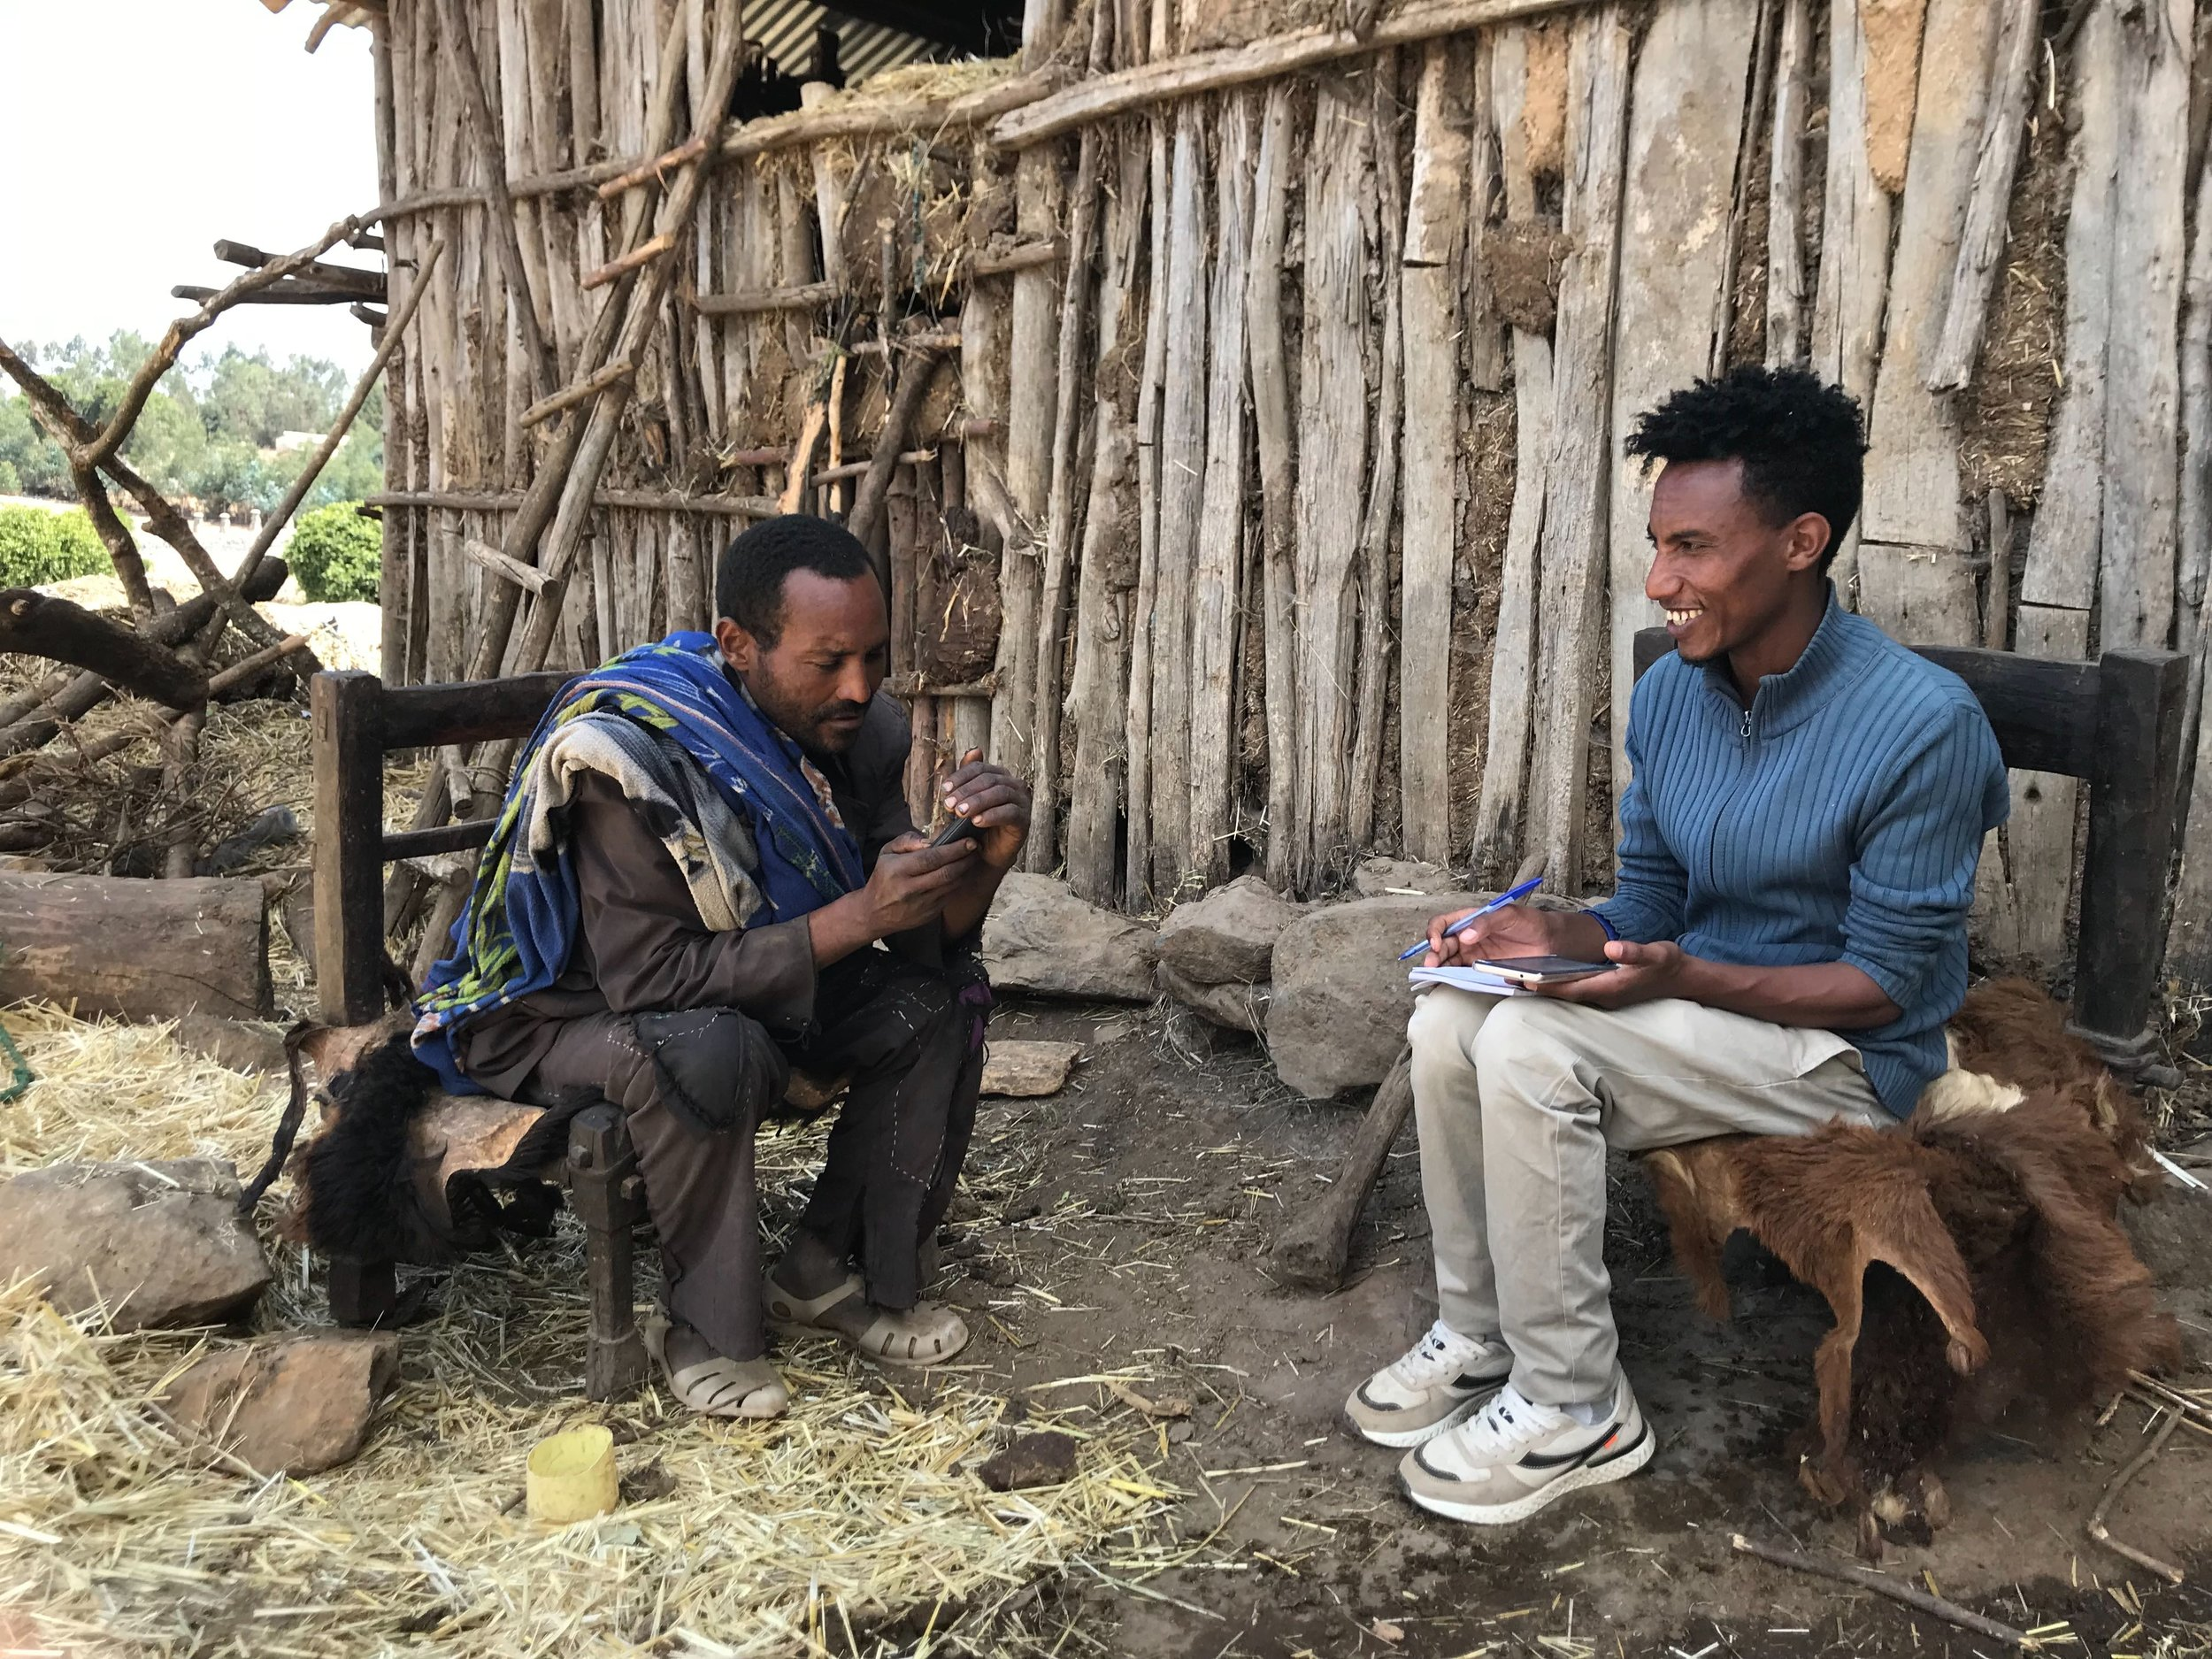 Markeshaw Dessie, an IDinsight data collector (right) conducts a survey about asset ownership in Wogera district, Amhara, Ethiopia